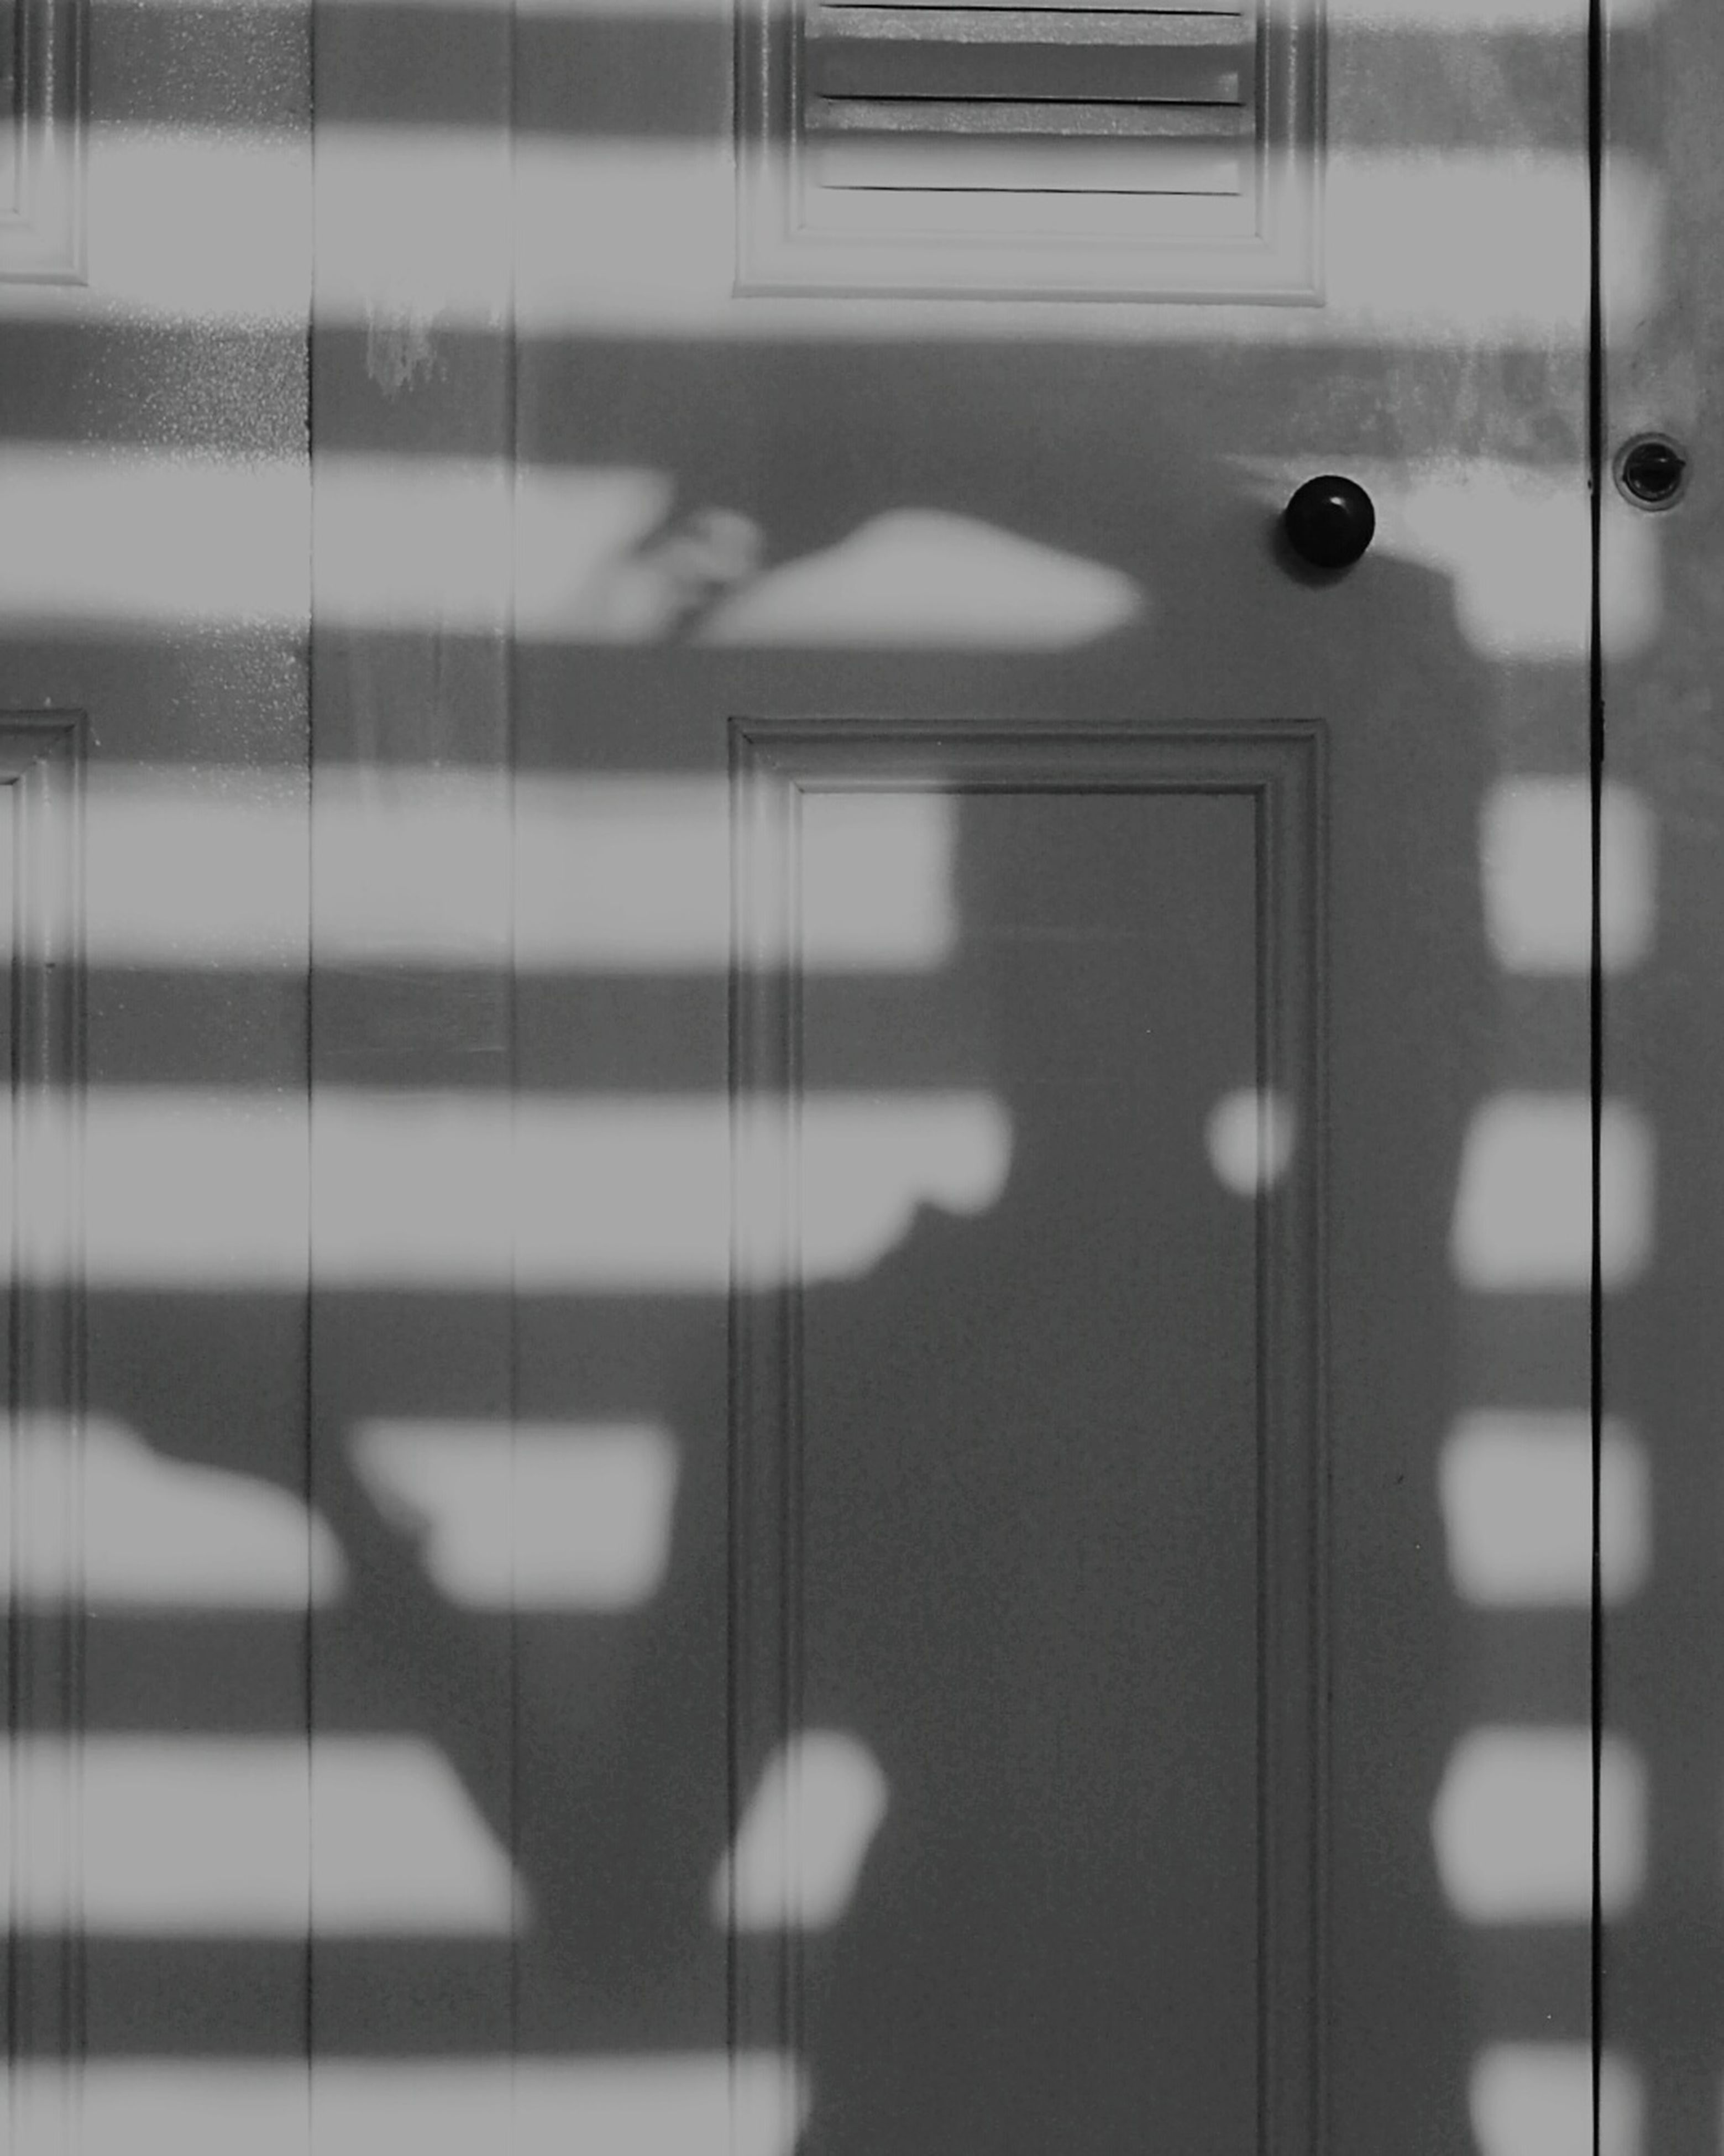 indoors, wall - building feature, built structure, architecture, illuminated, pattern, metal, lighting equipment, wall, no people, modern, reflection, flooring, railing, close-up, in a row, door, steps, shadow, white color